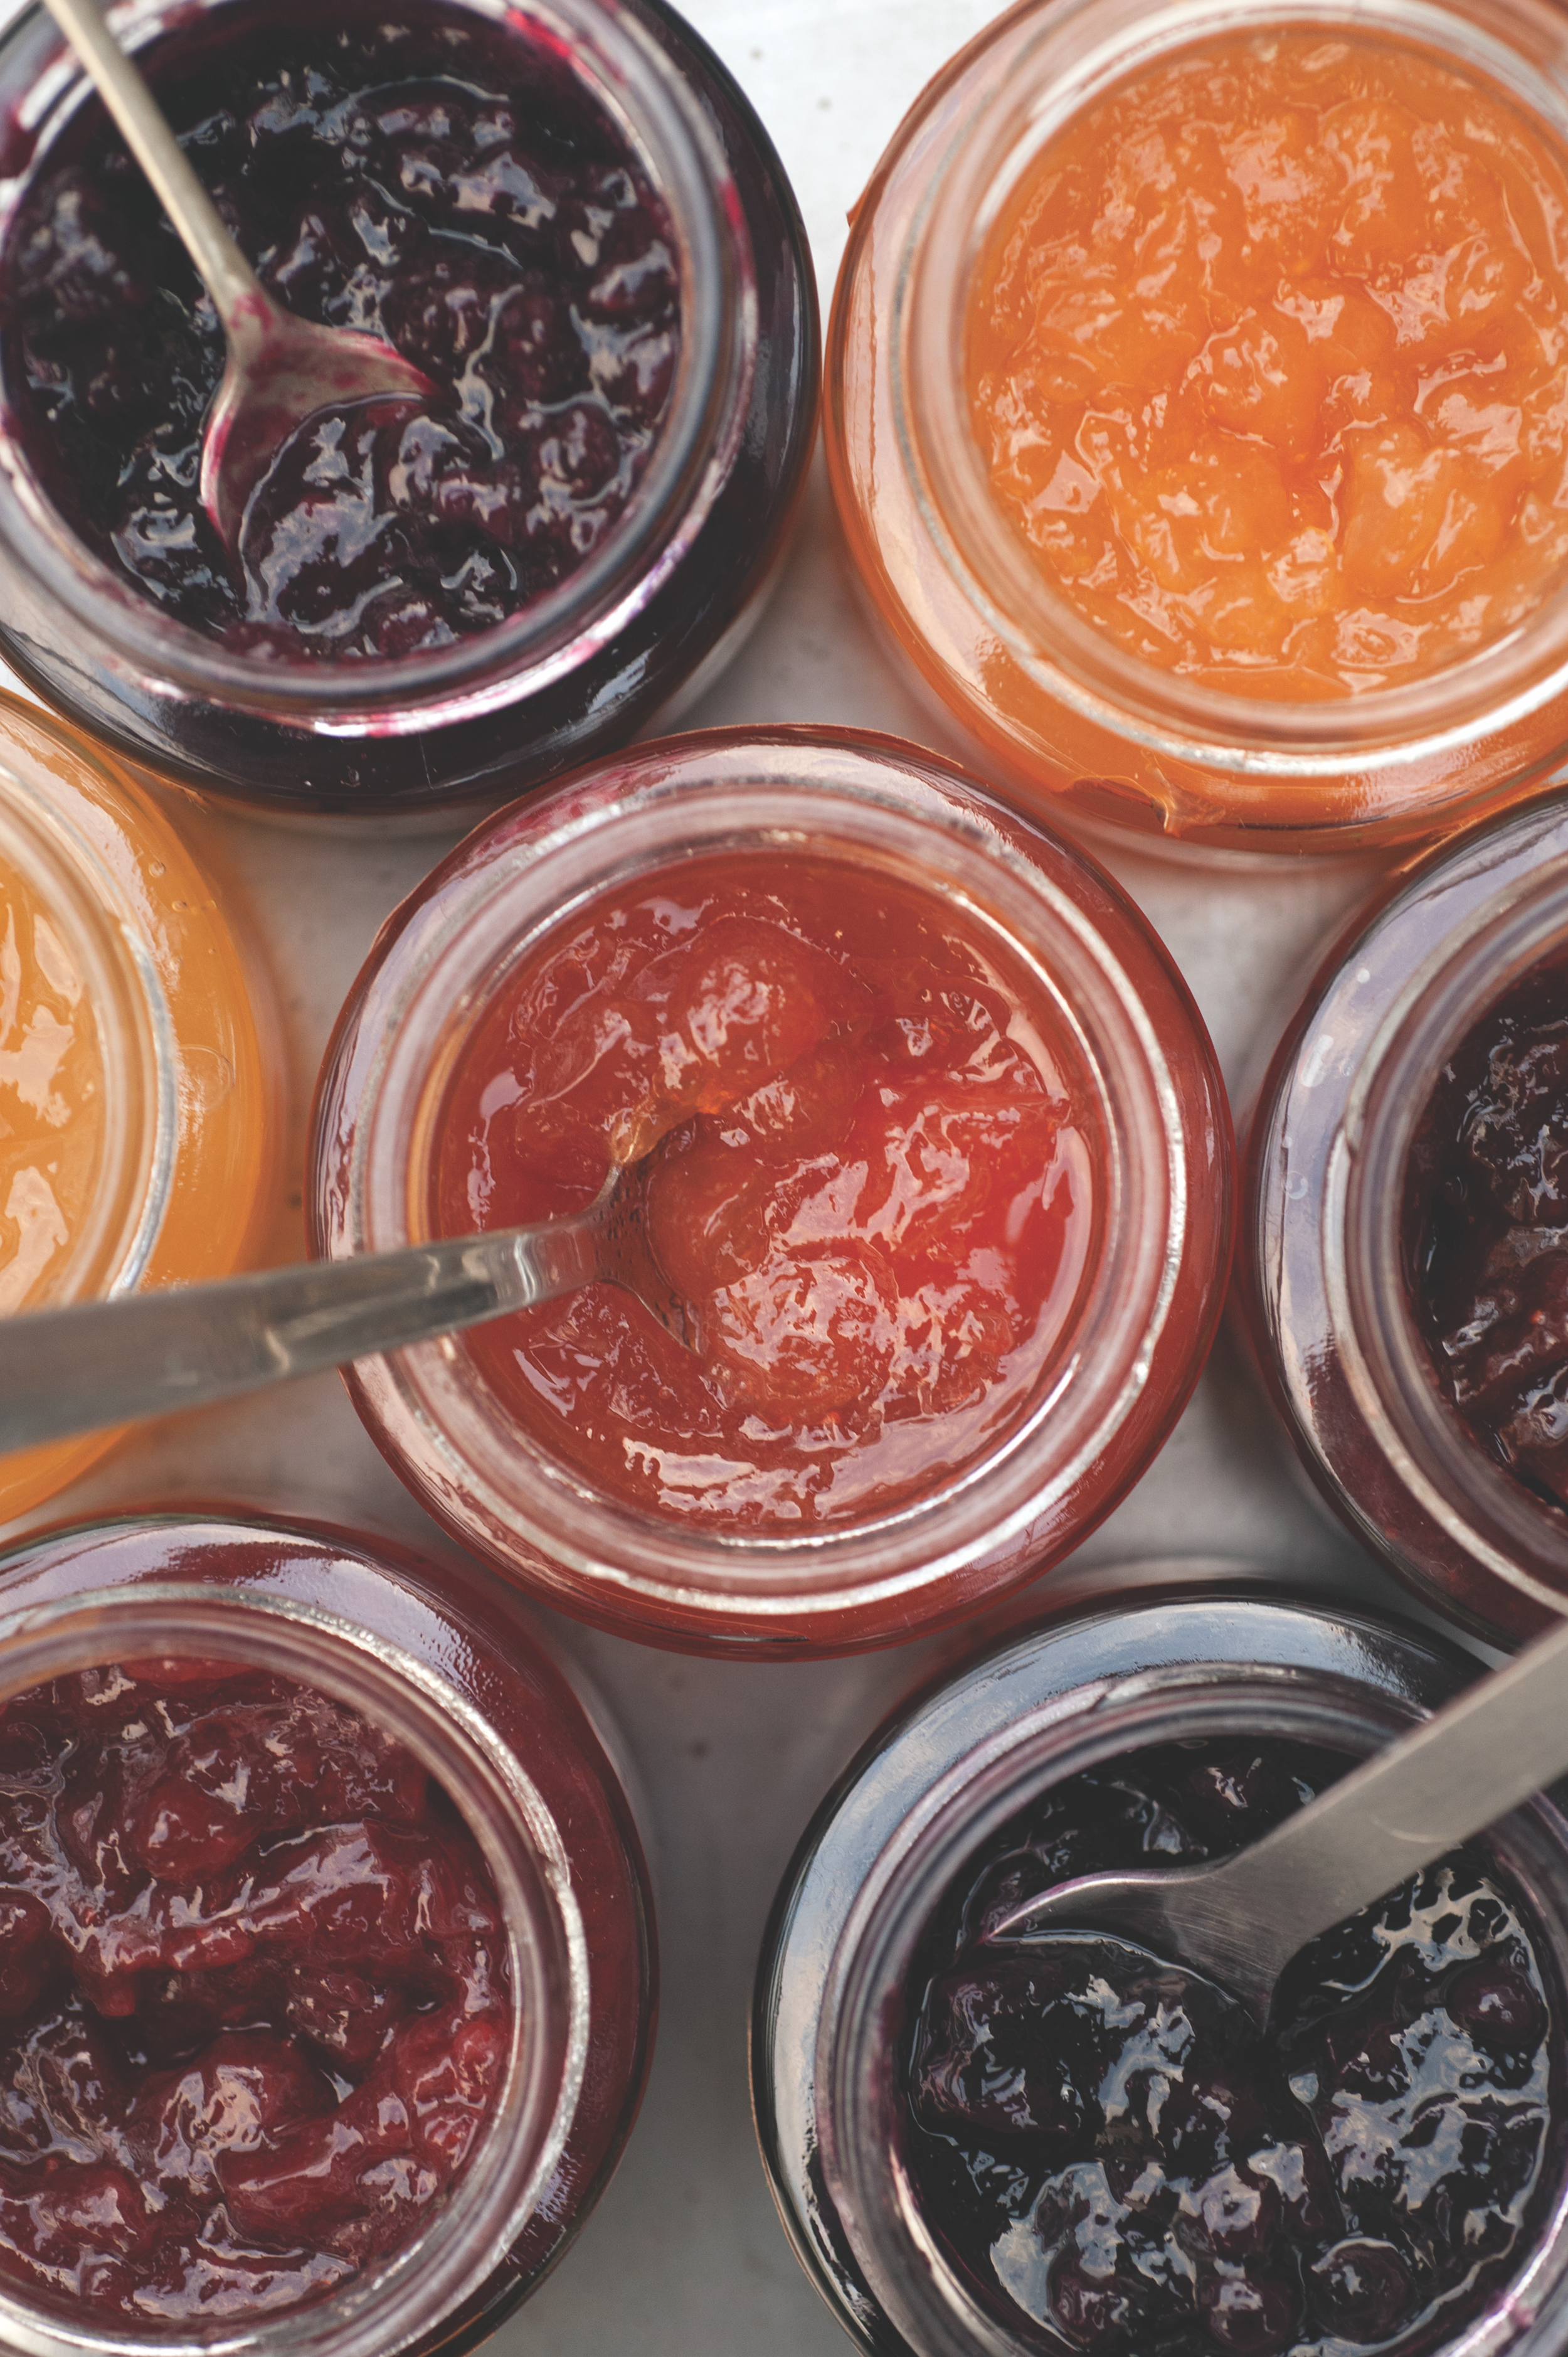 WHY OUR JAM - IS THE JAM